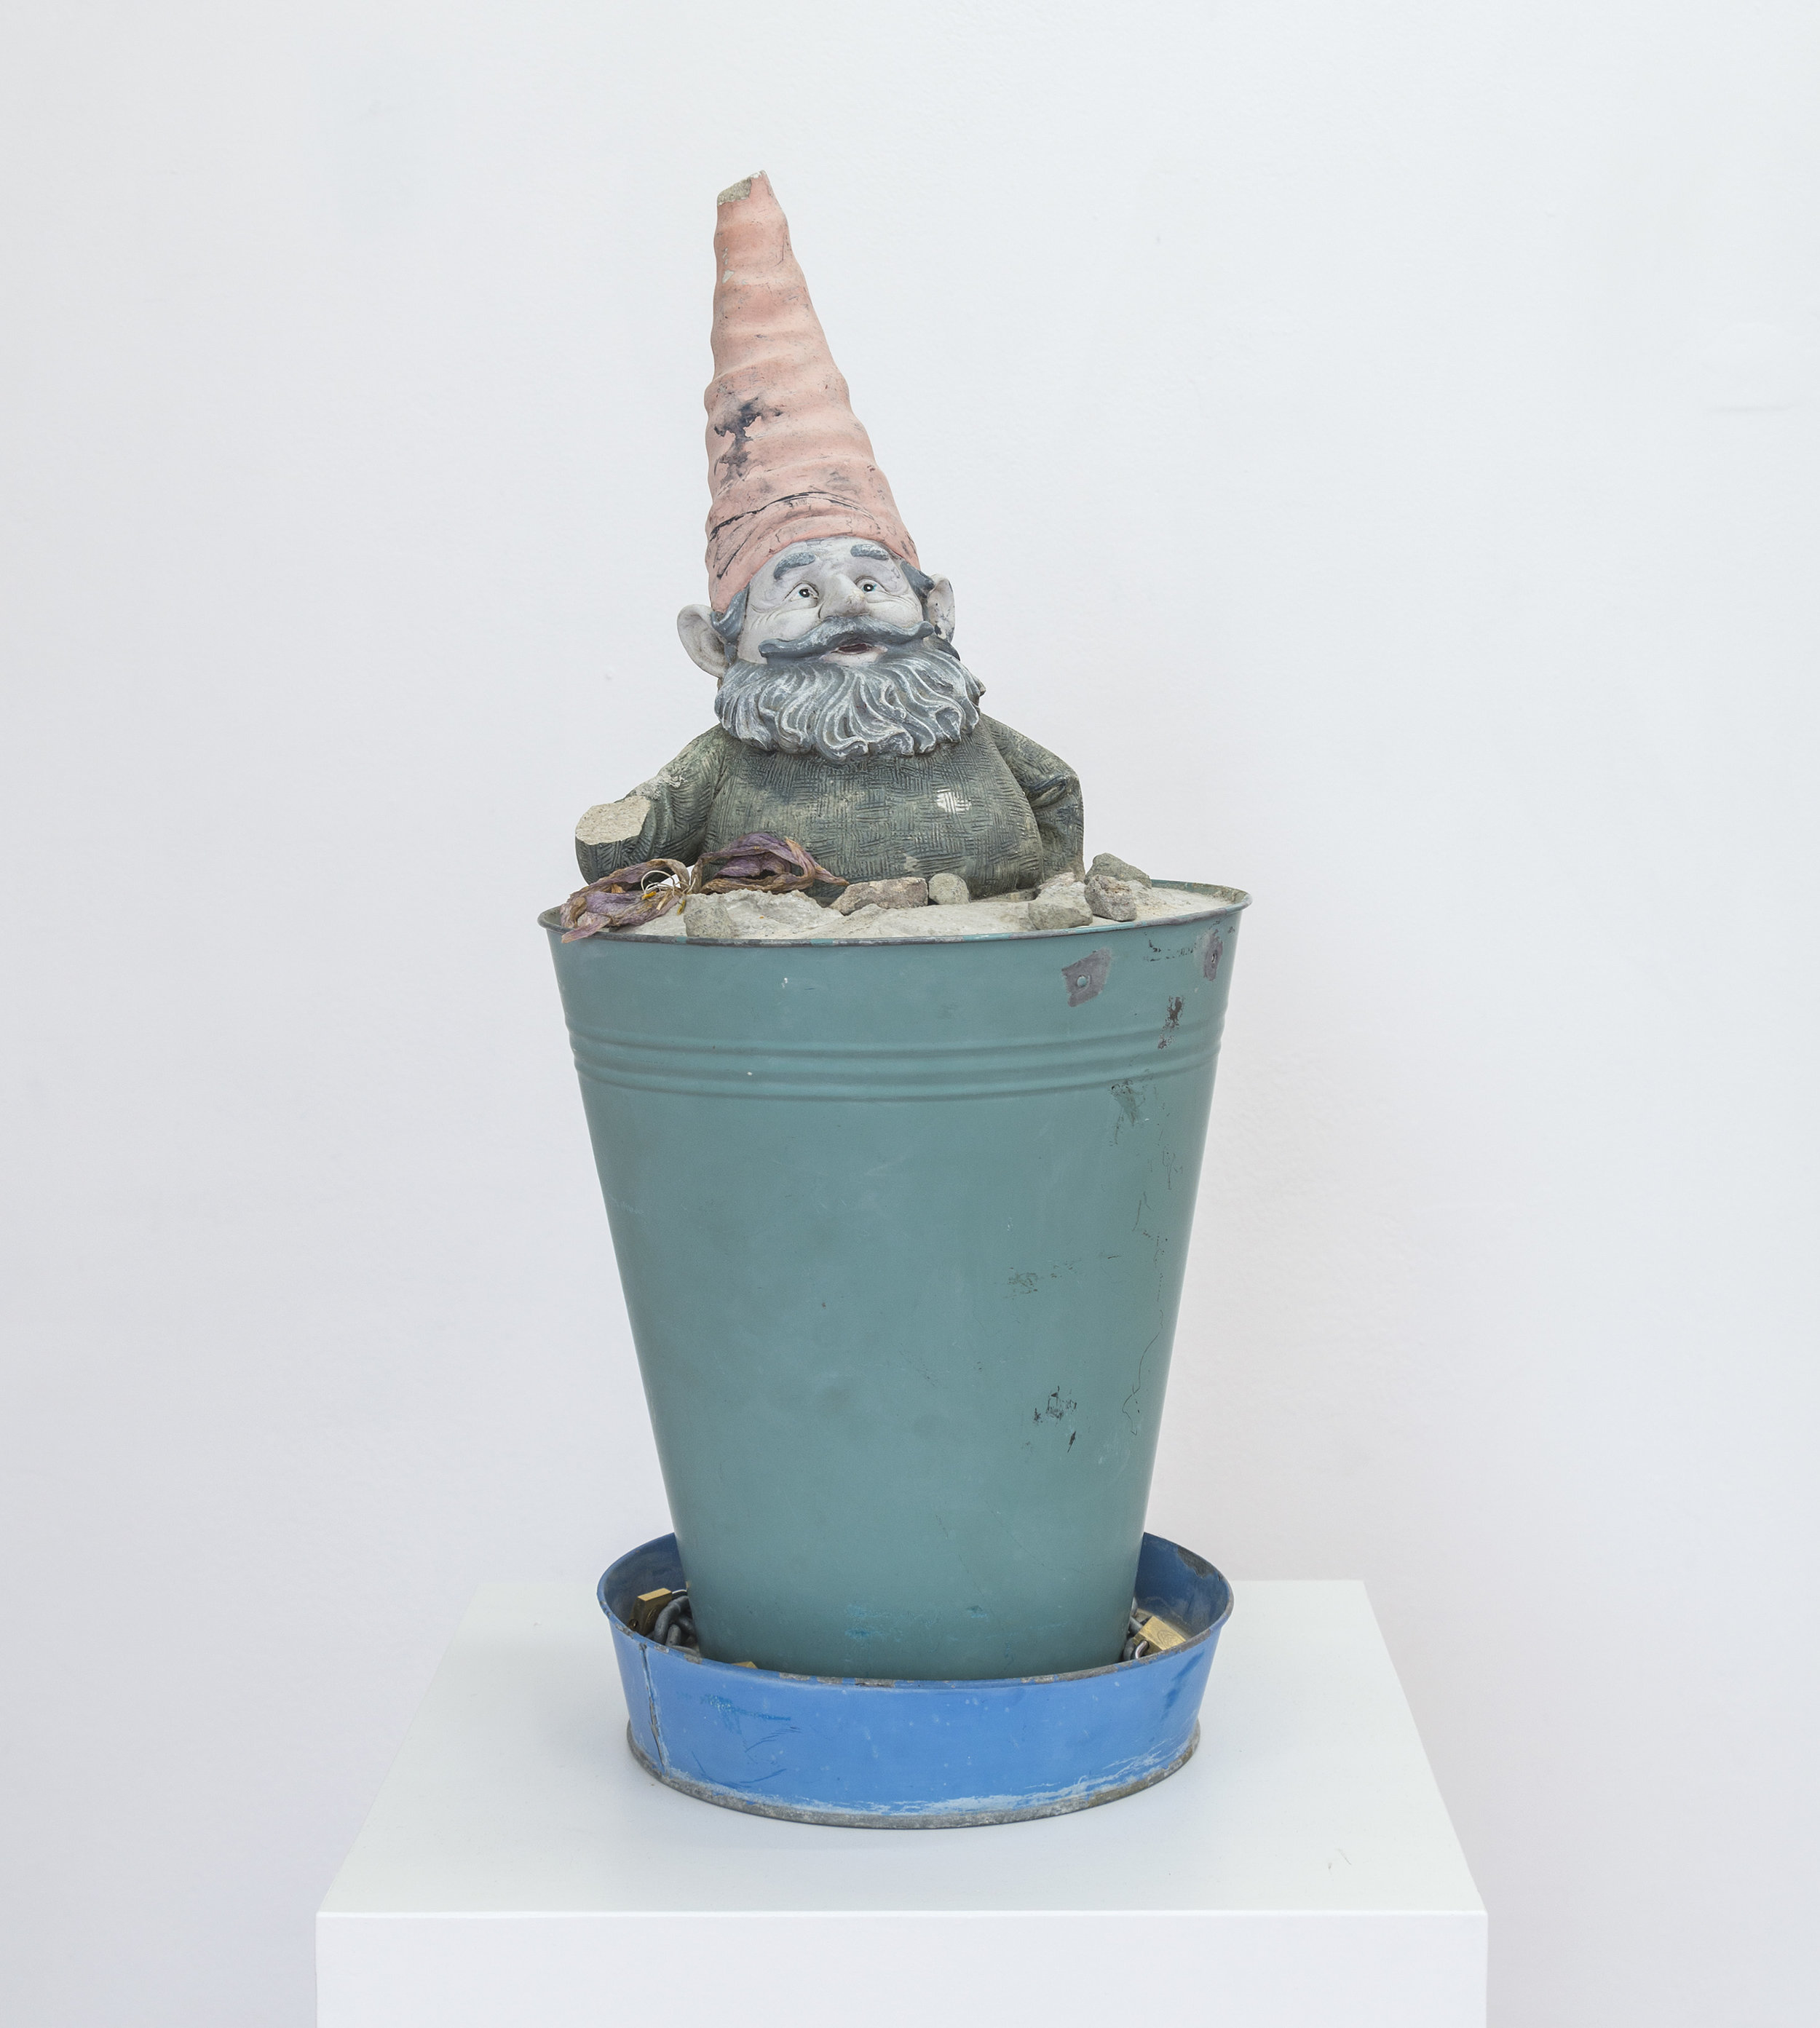 Stab in the dark, 2019   Gnome, metal plant pot, concrete, dead flower, chain and lock, rocks on white pedestal 11x25x10 inches